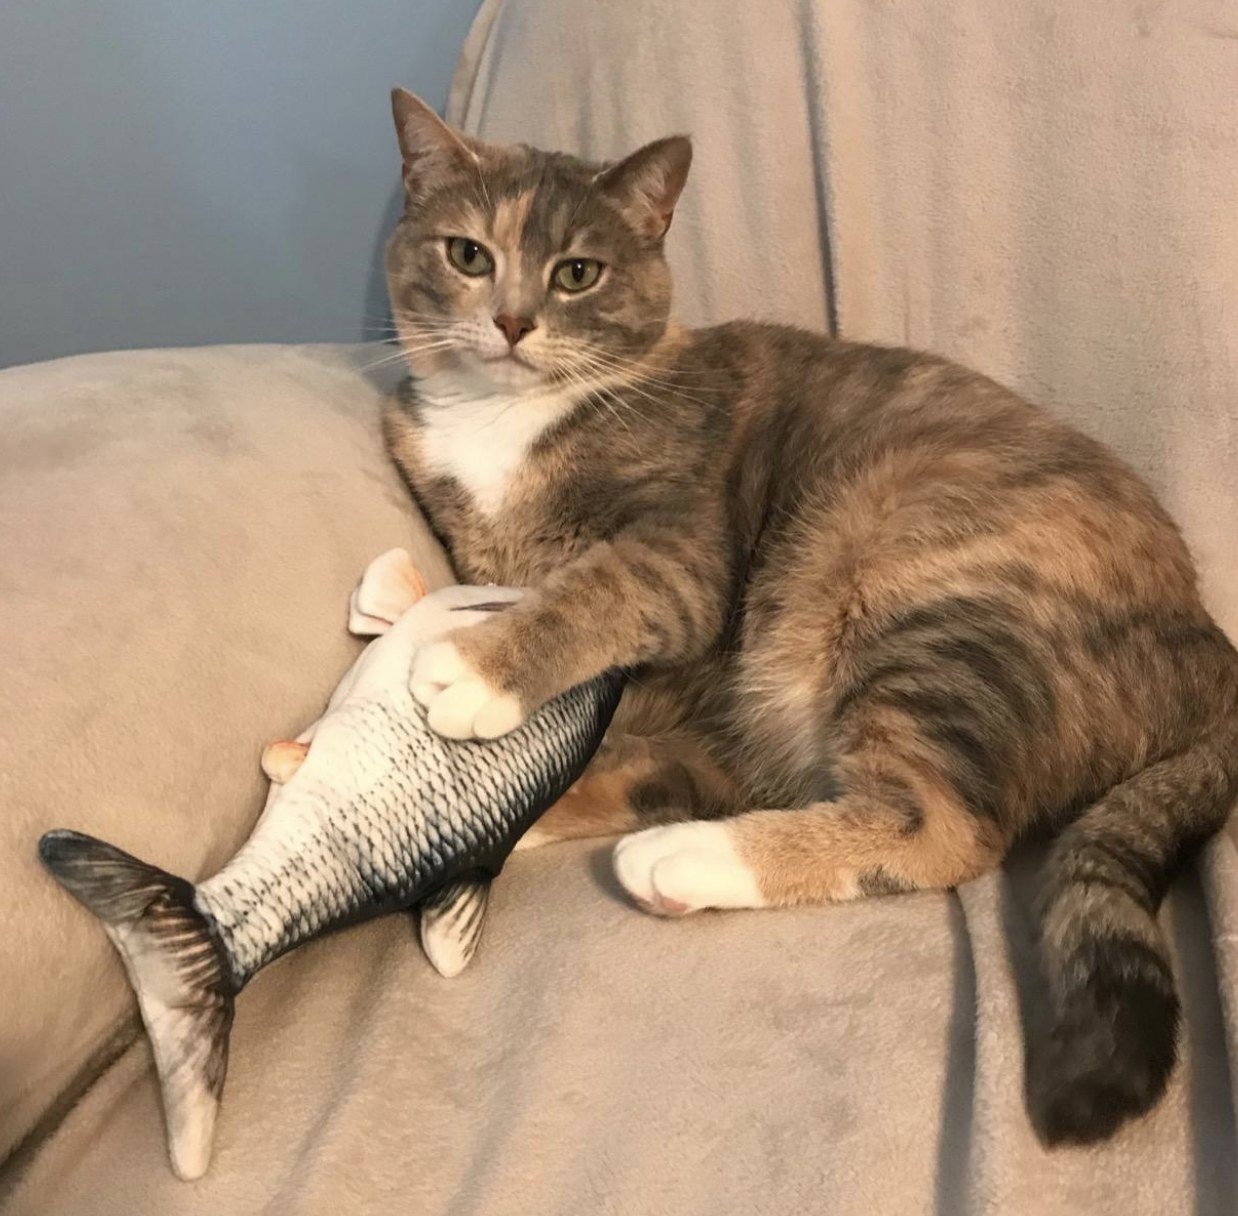 A brown and orange striped cat with a silver flopping fish toy in between their paws